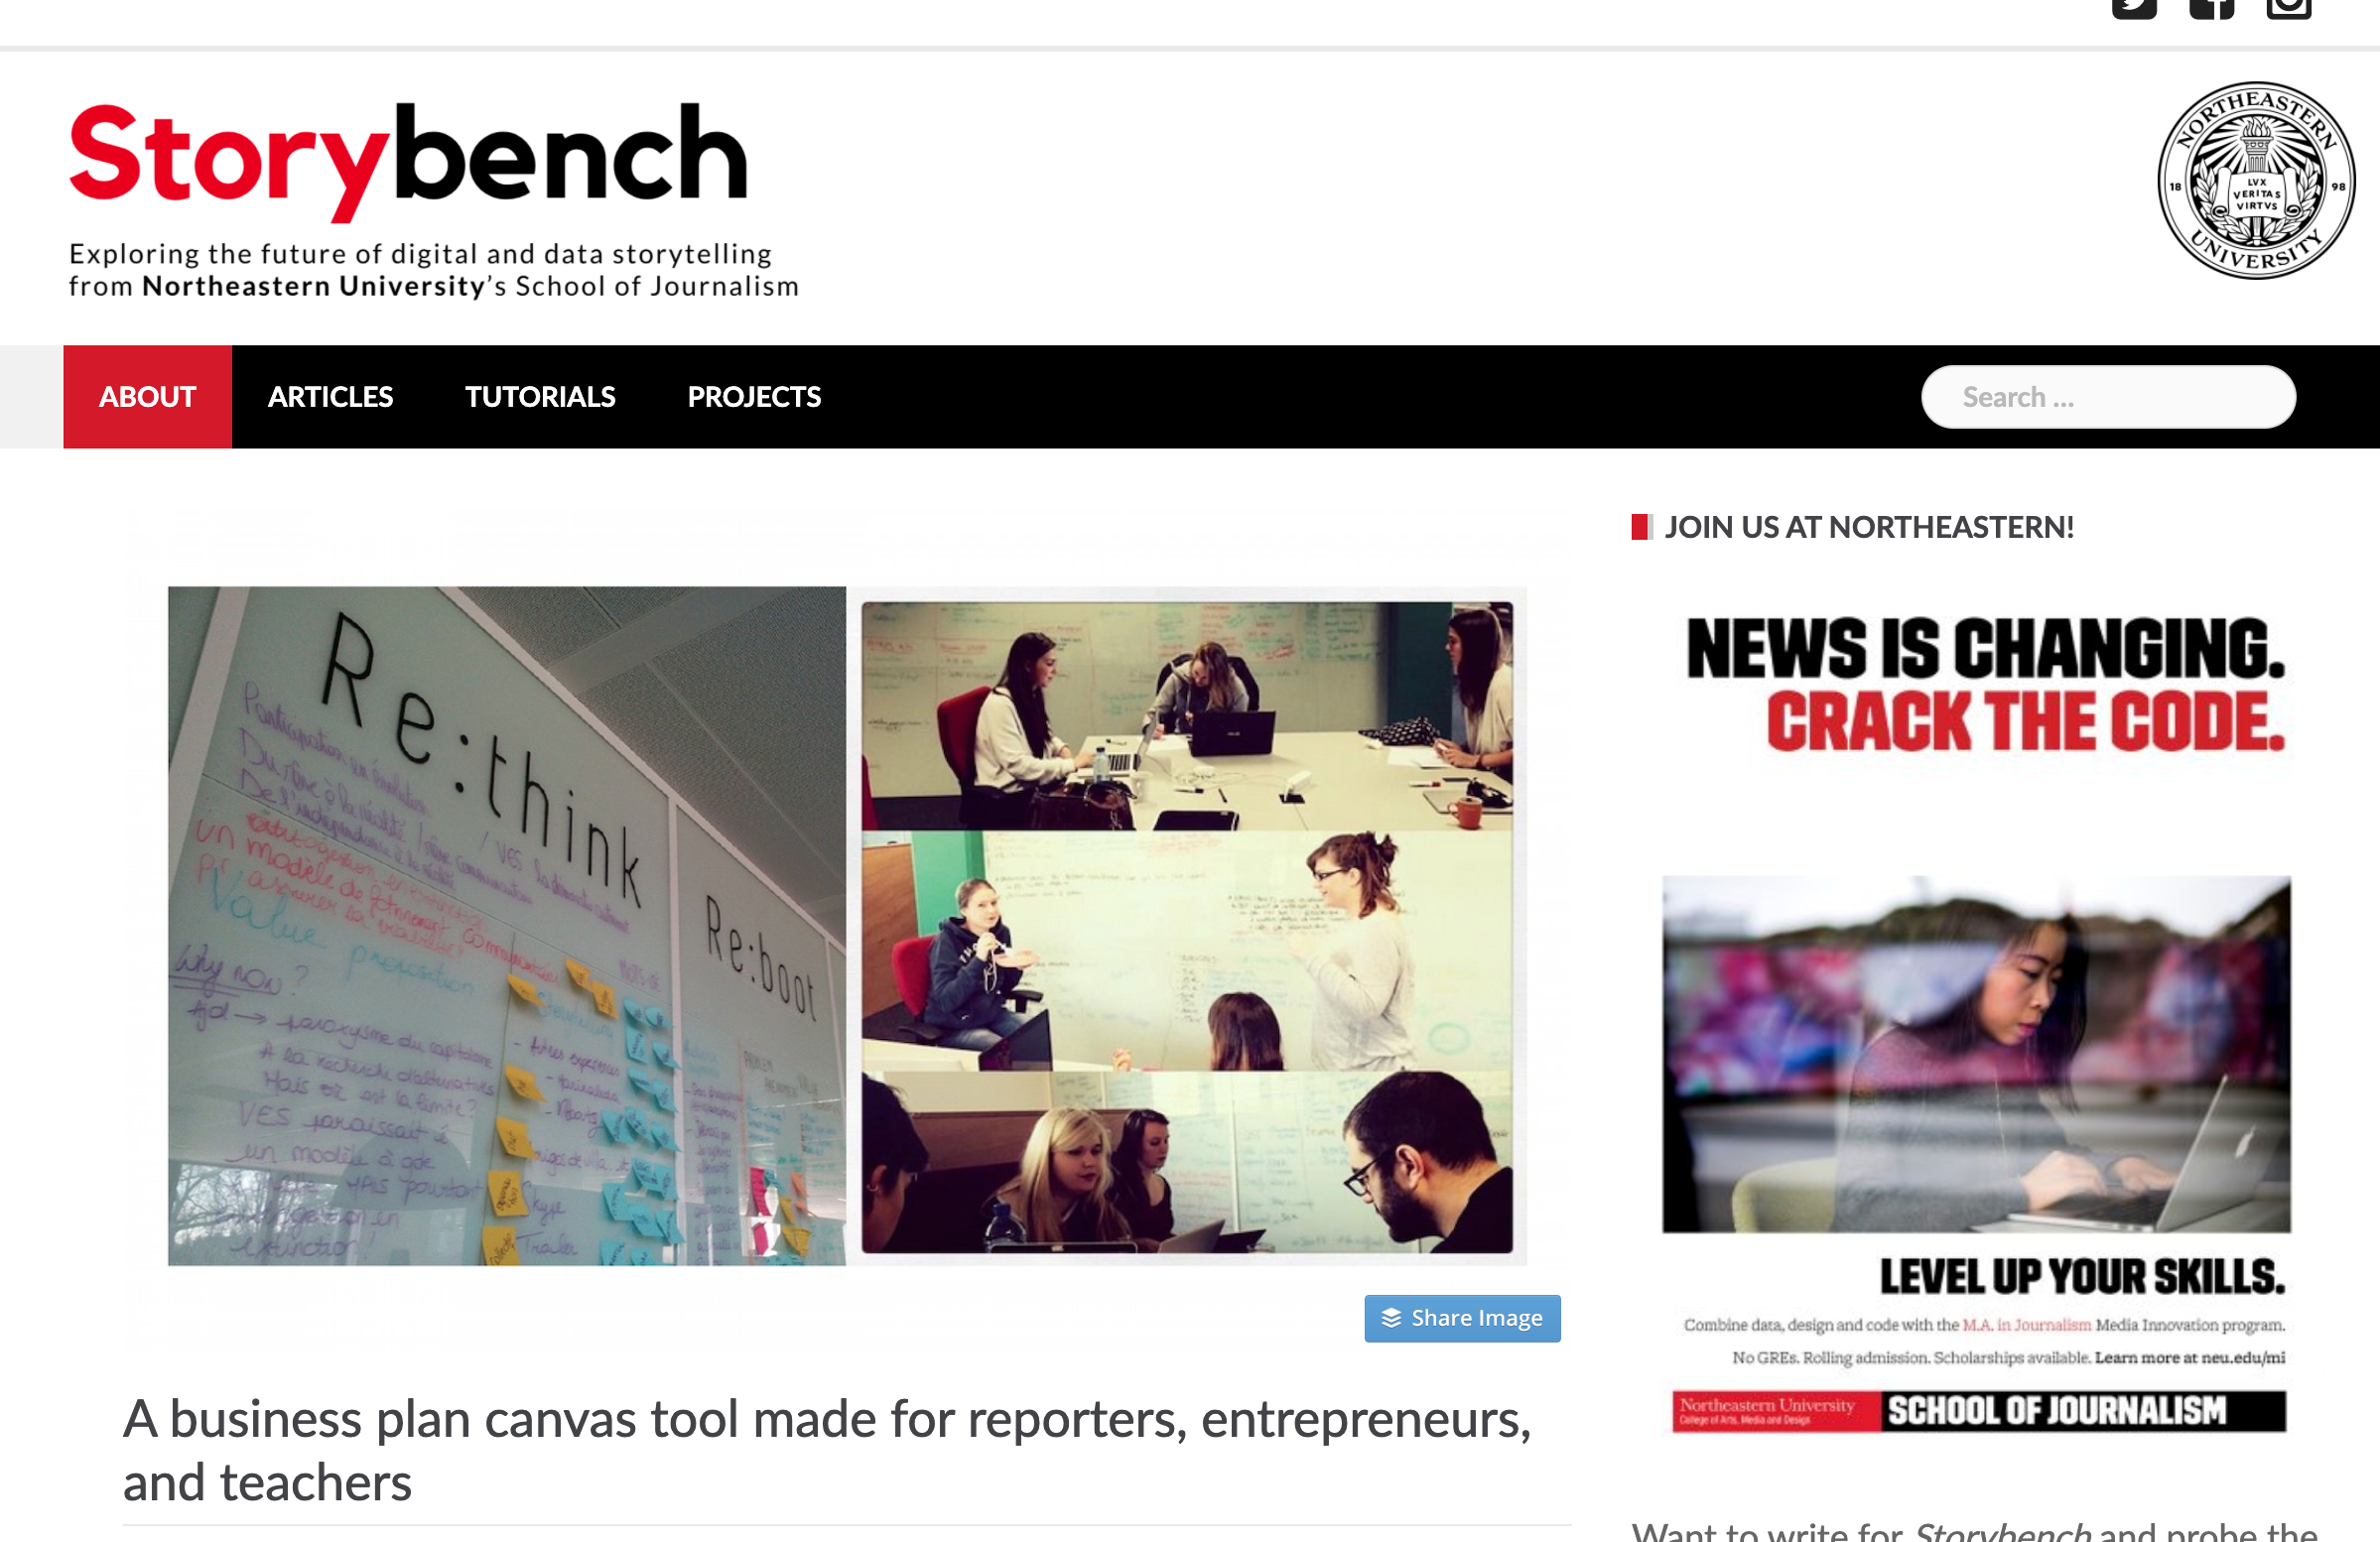 A business plan canvas tool made for reporters, entrepreneurs, and teachers